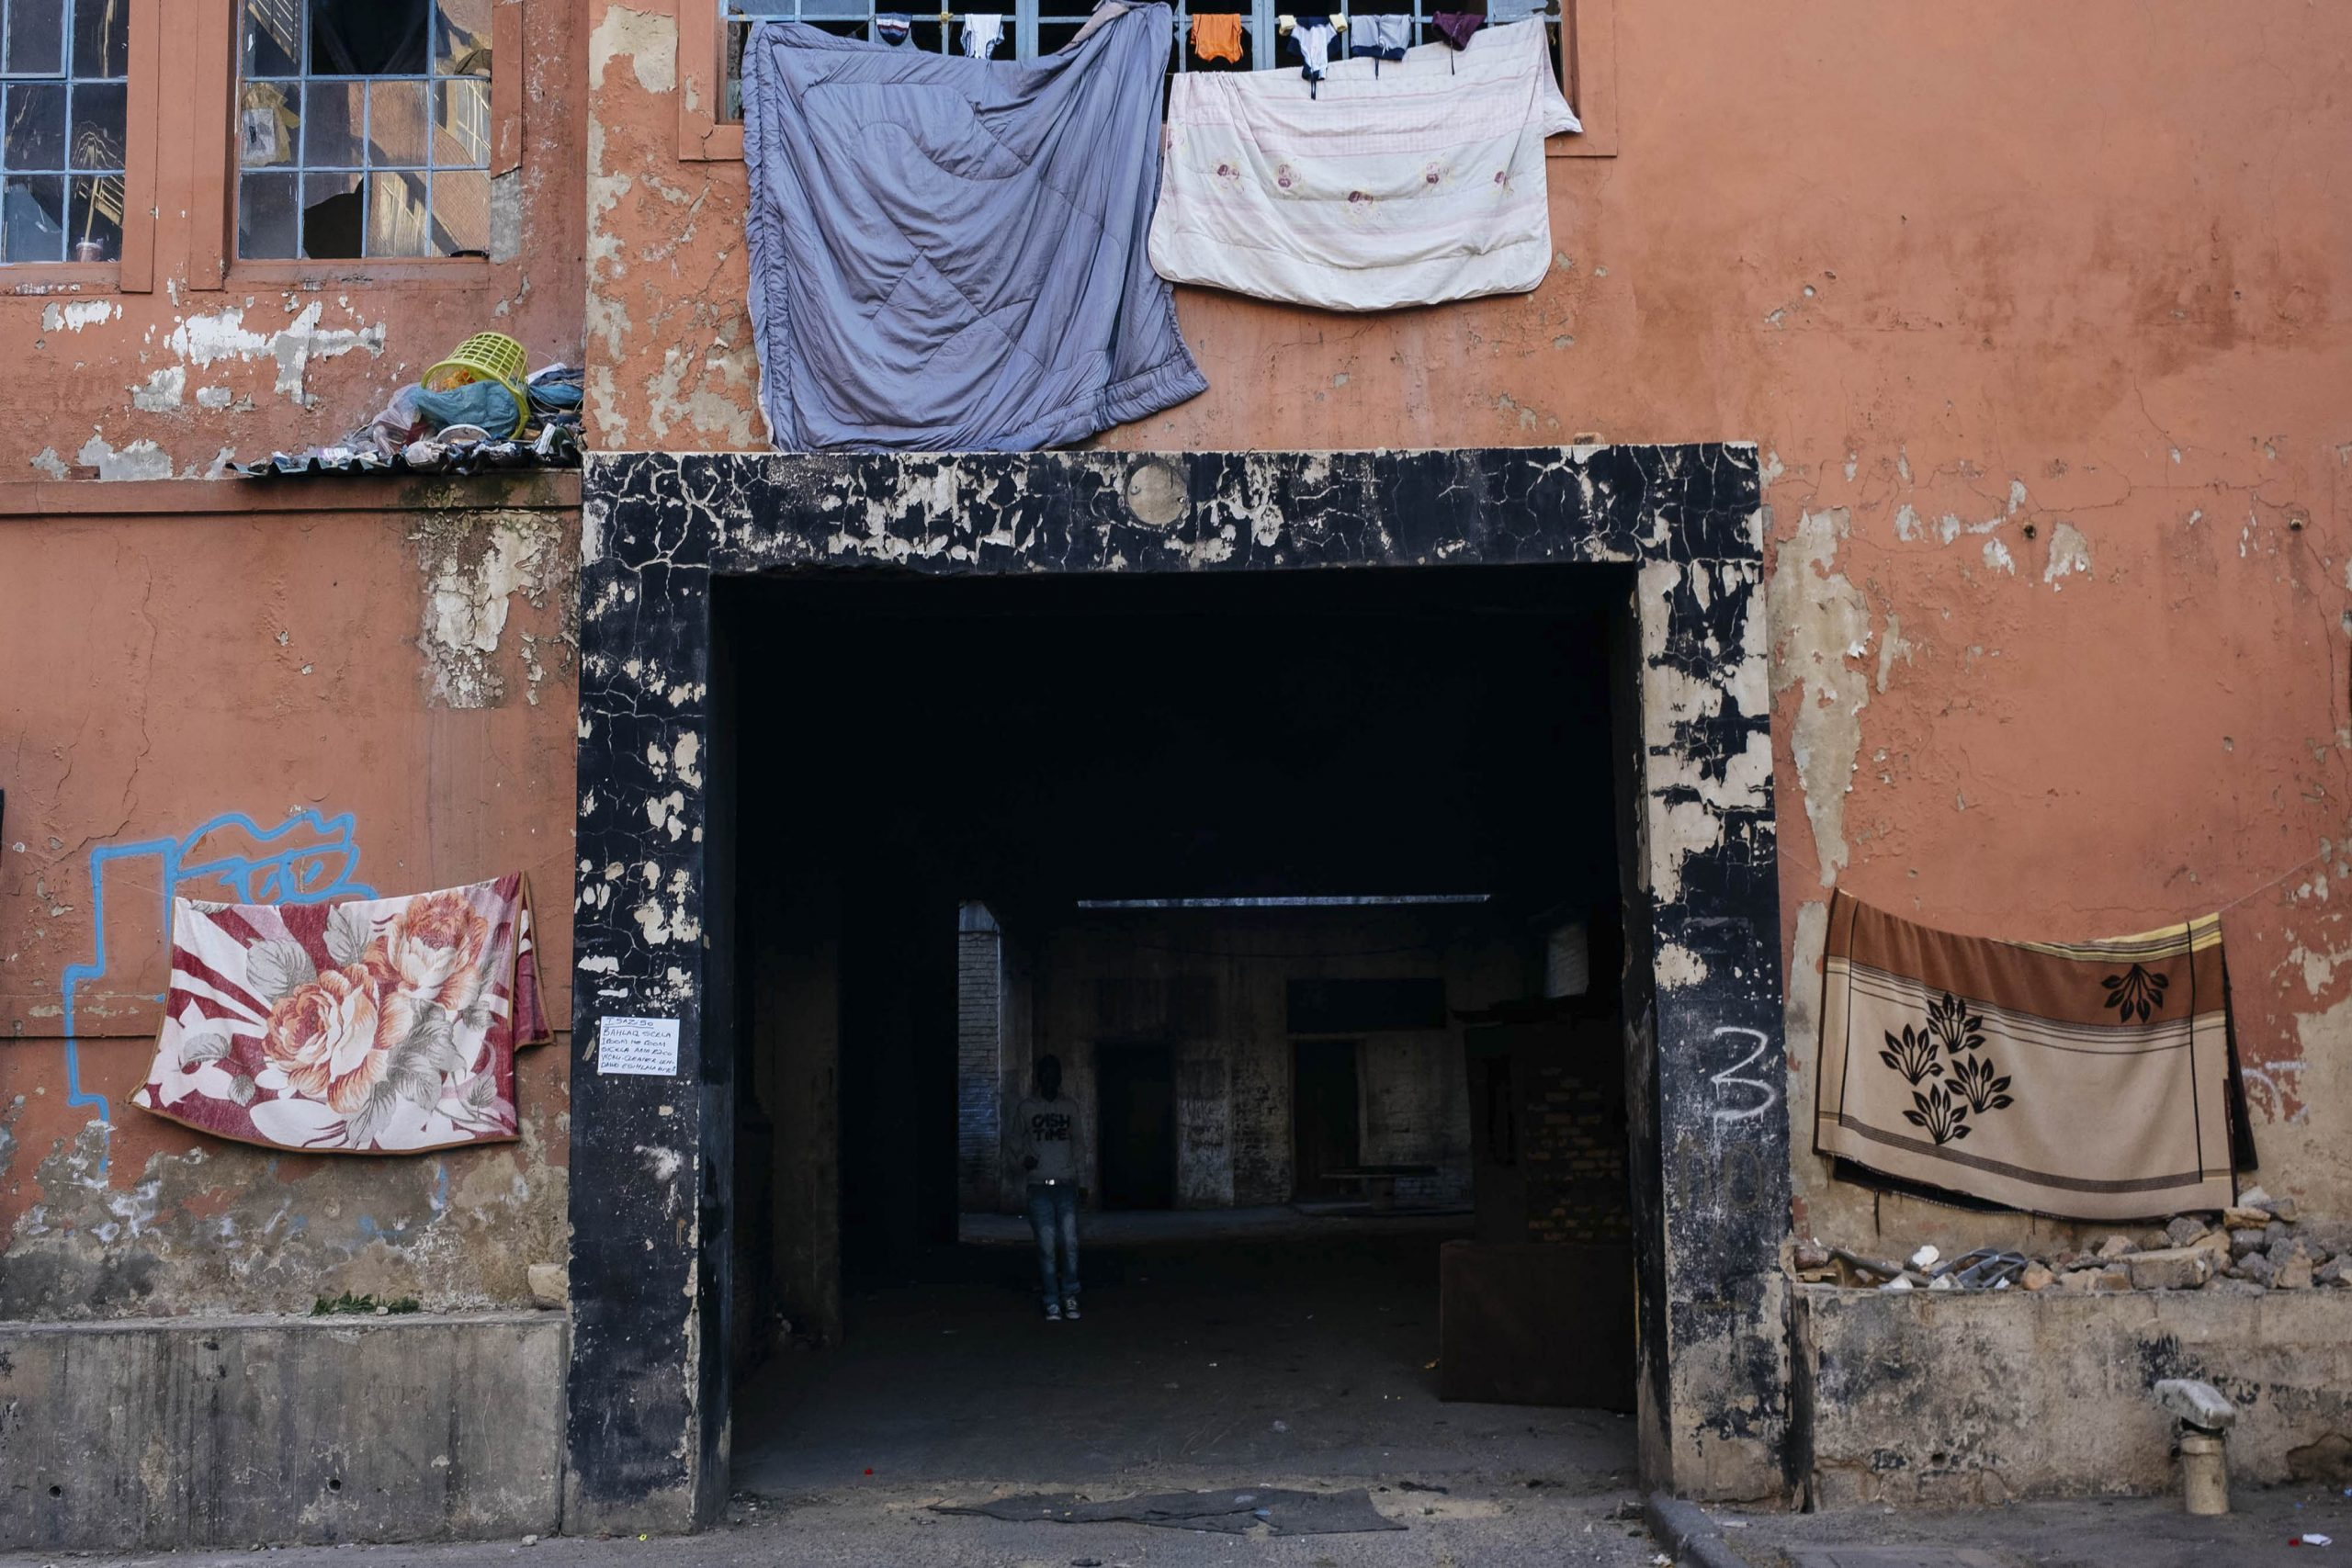 16 July 2020: Blankets hung out to dry at the entrance to the Delvers Building in the inner city. Rent is R200 a month, but there is no electricity or running water and there are no ablutions in the building. Residents have to collect water from a communal tap outside for washing, cleaning and cooking, increasing their vulnerability to coronavirus exposure and making regular hand washing difficult.